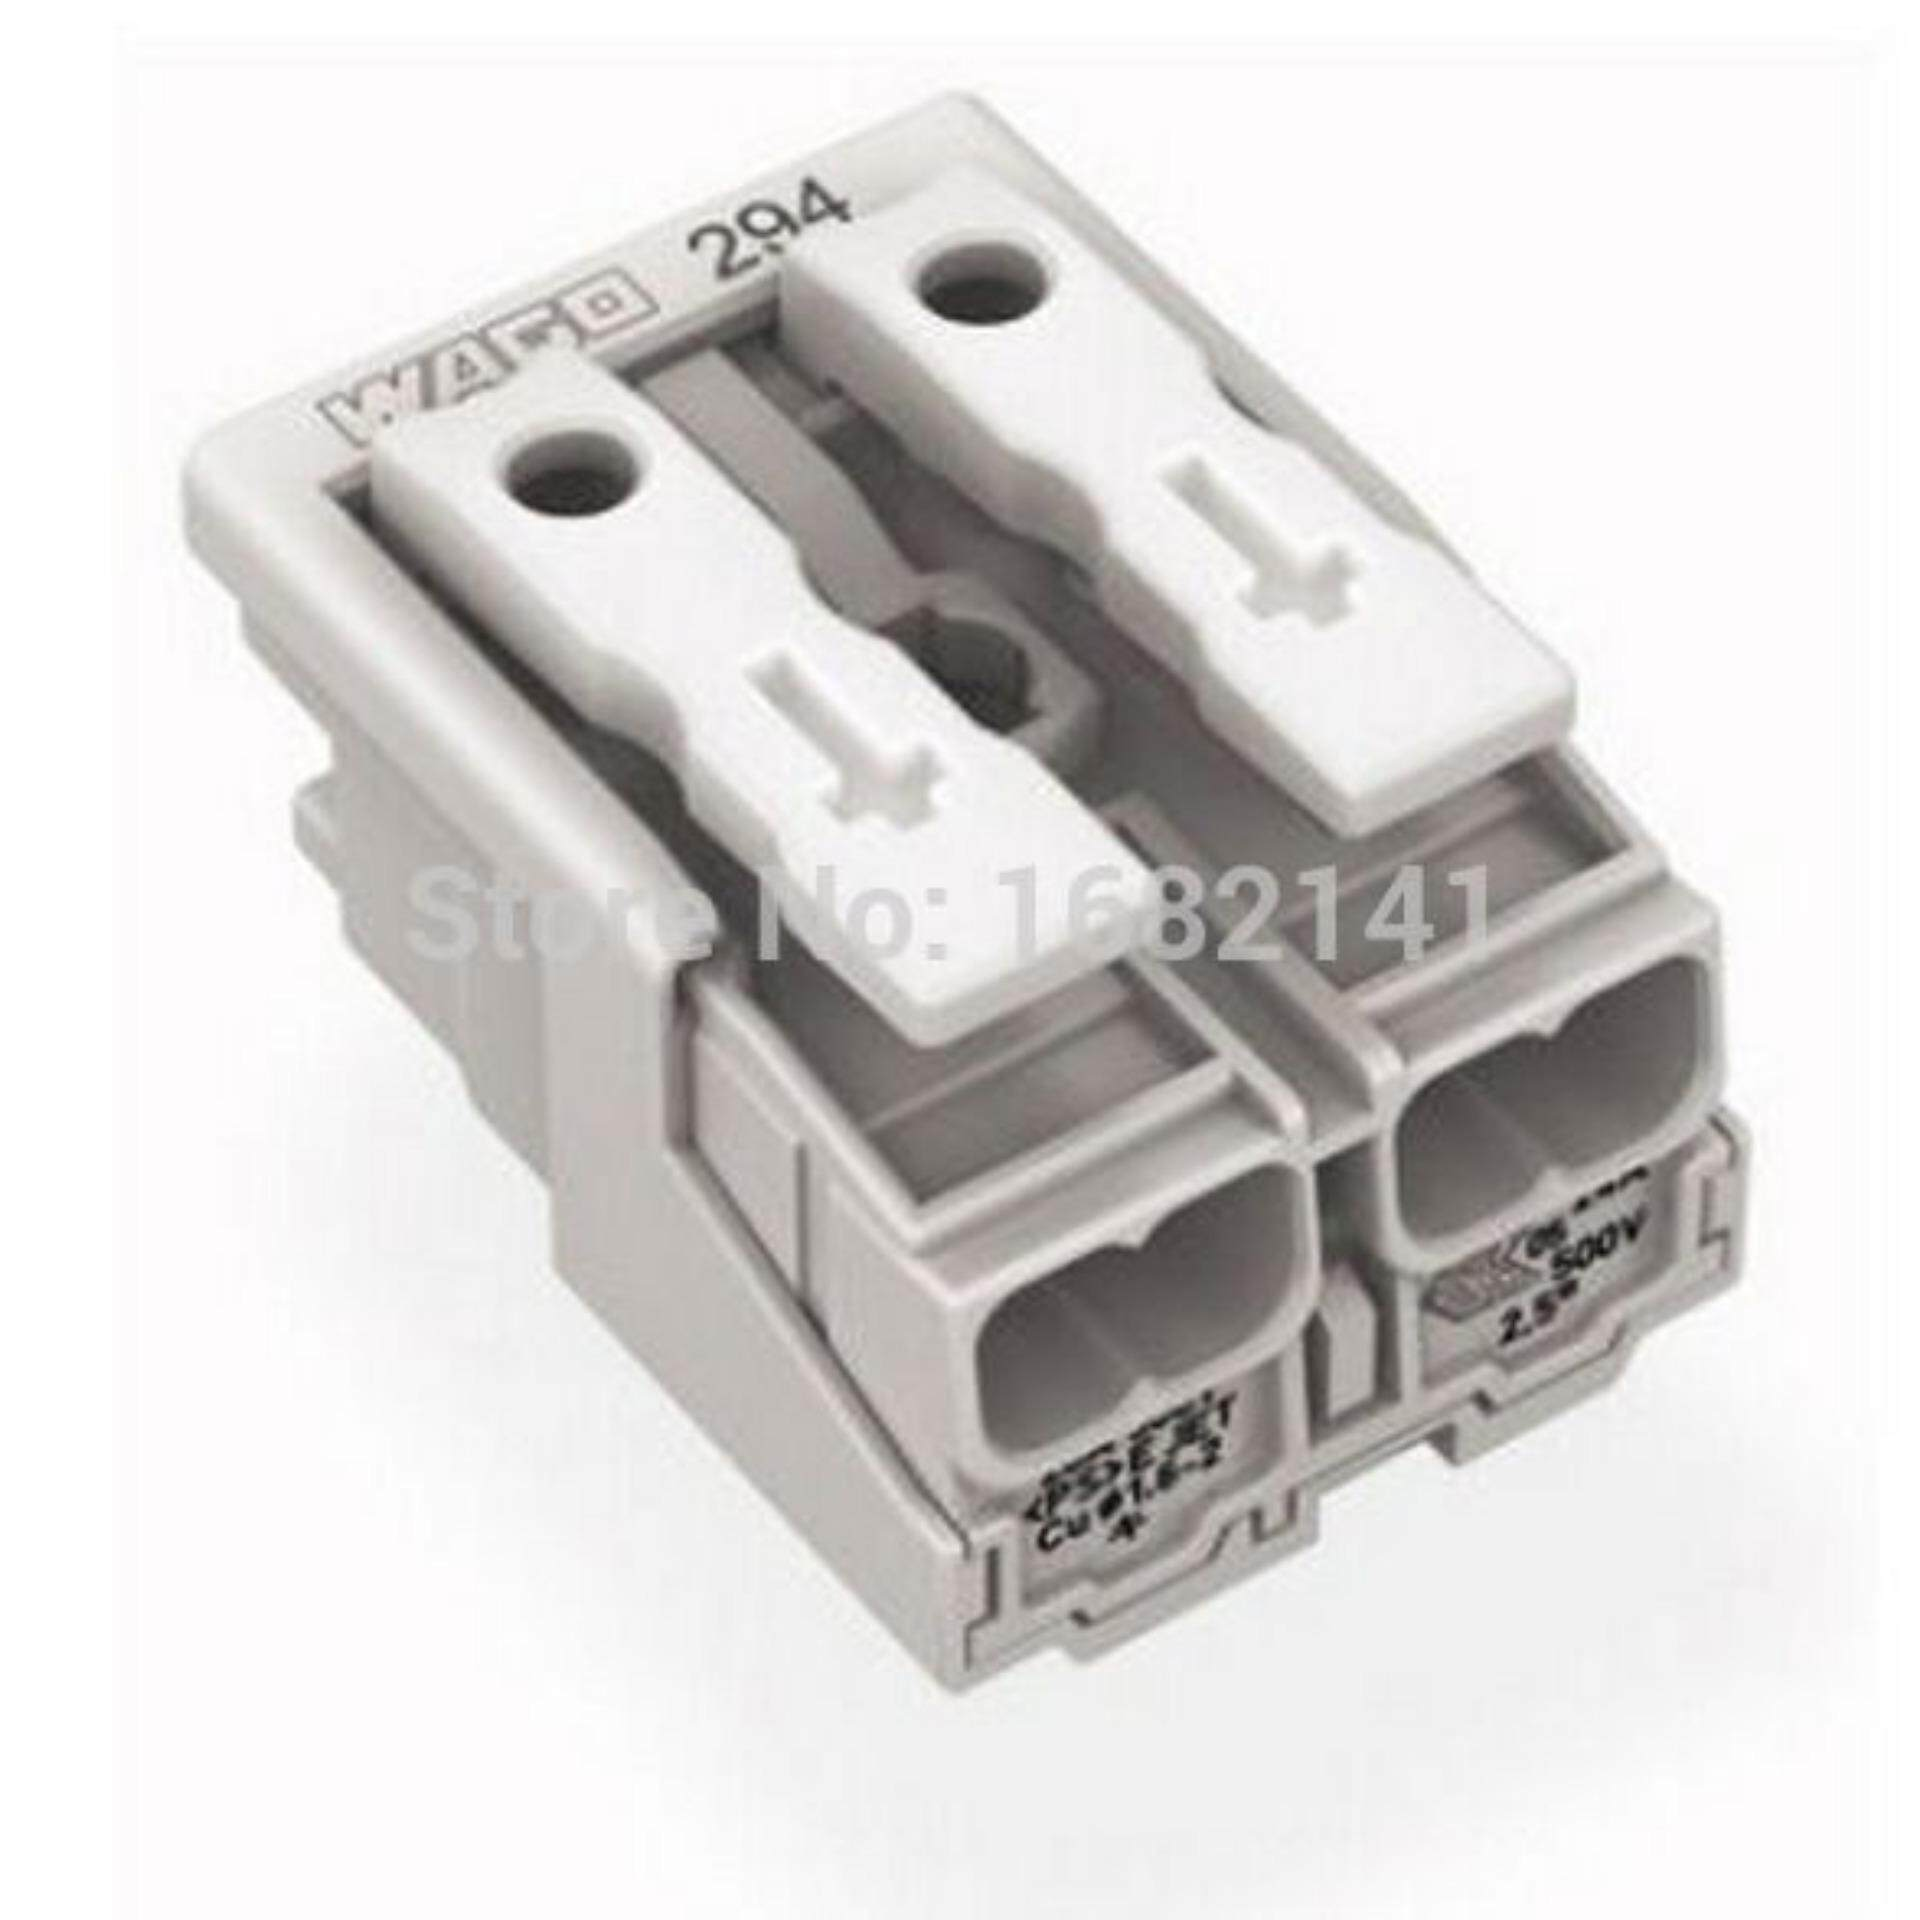 Sell Wago 221 Cheapest Best Quality My Store Connector 2 Wire 222 412 Compact Terminal Block Lever Cage Clamp Myr 18